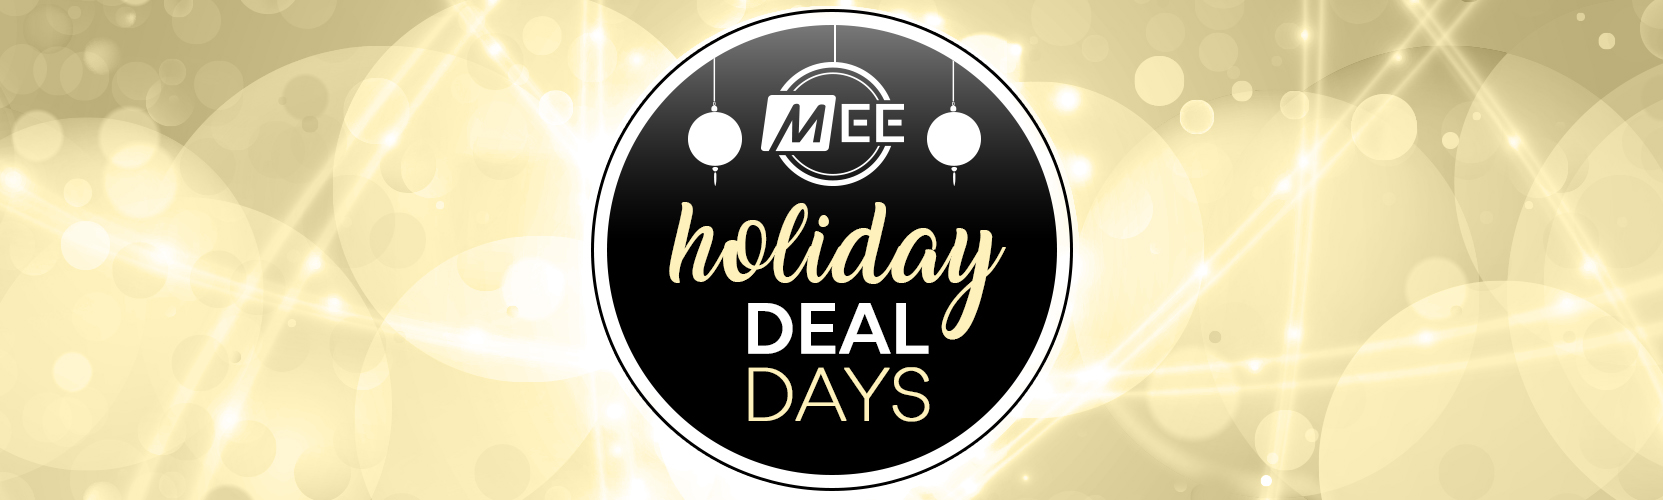 deals and promotions of the week